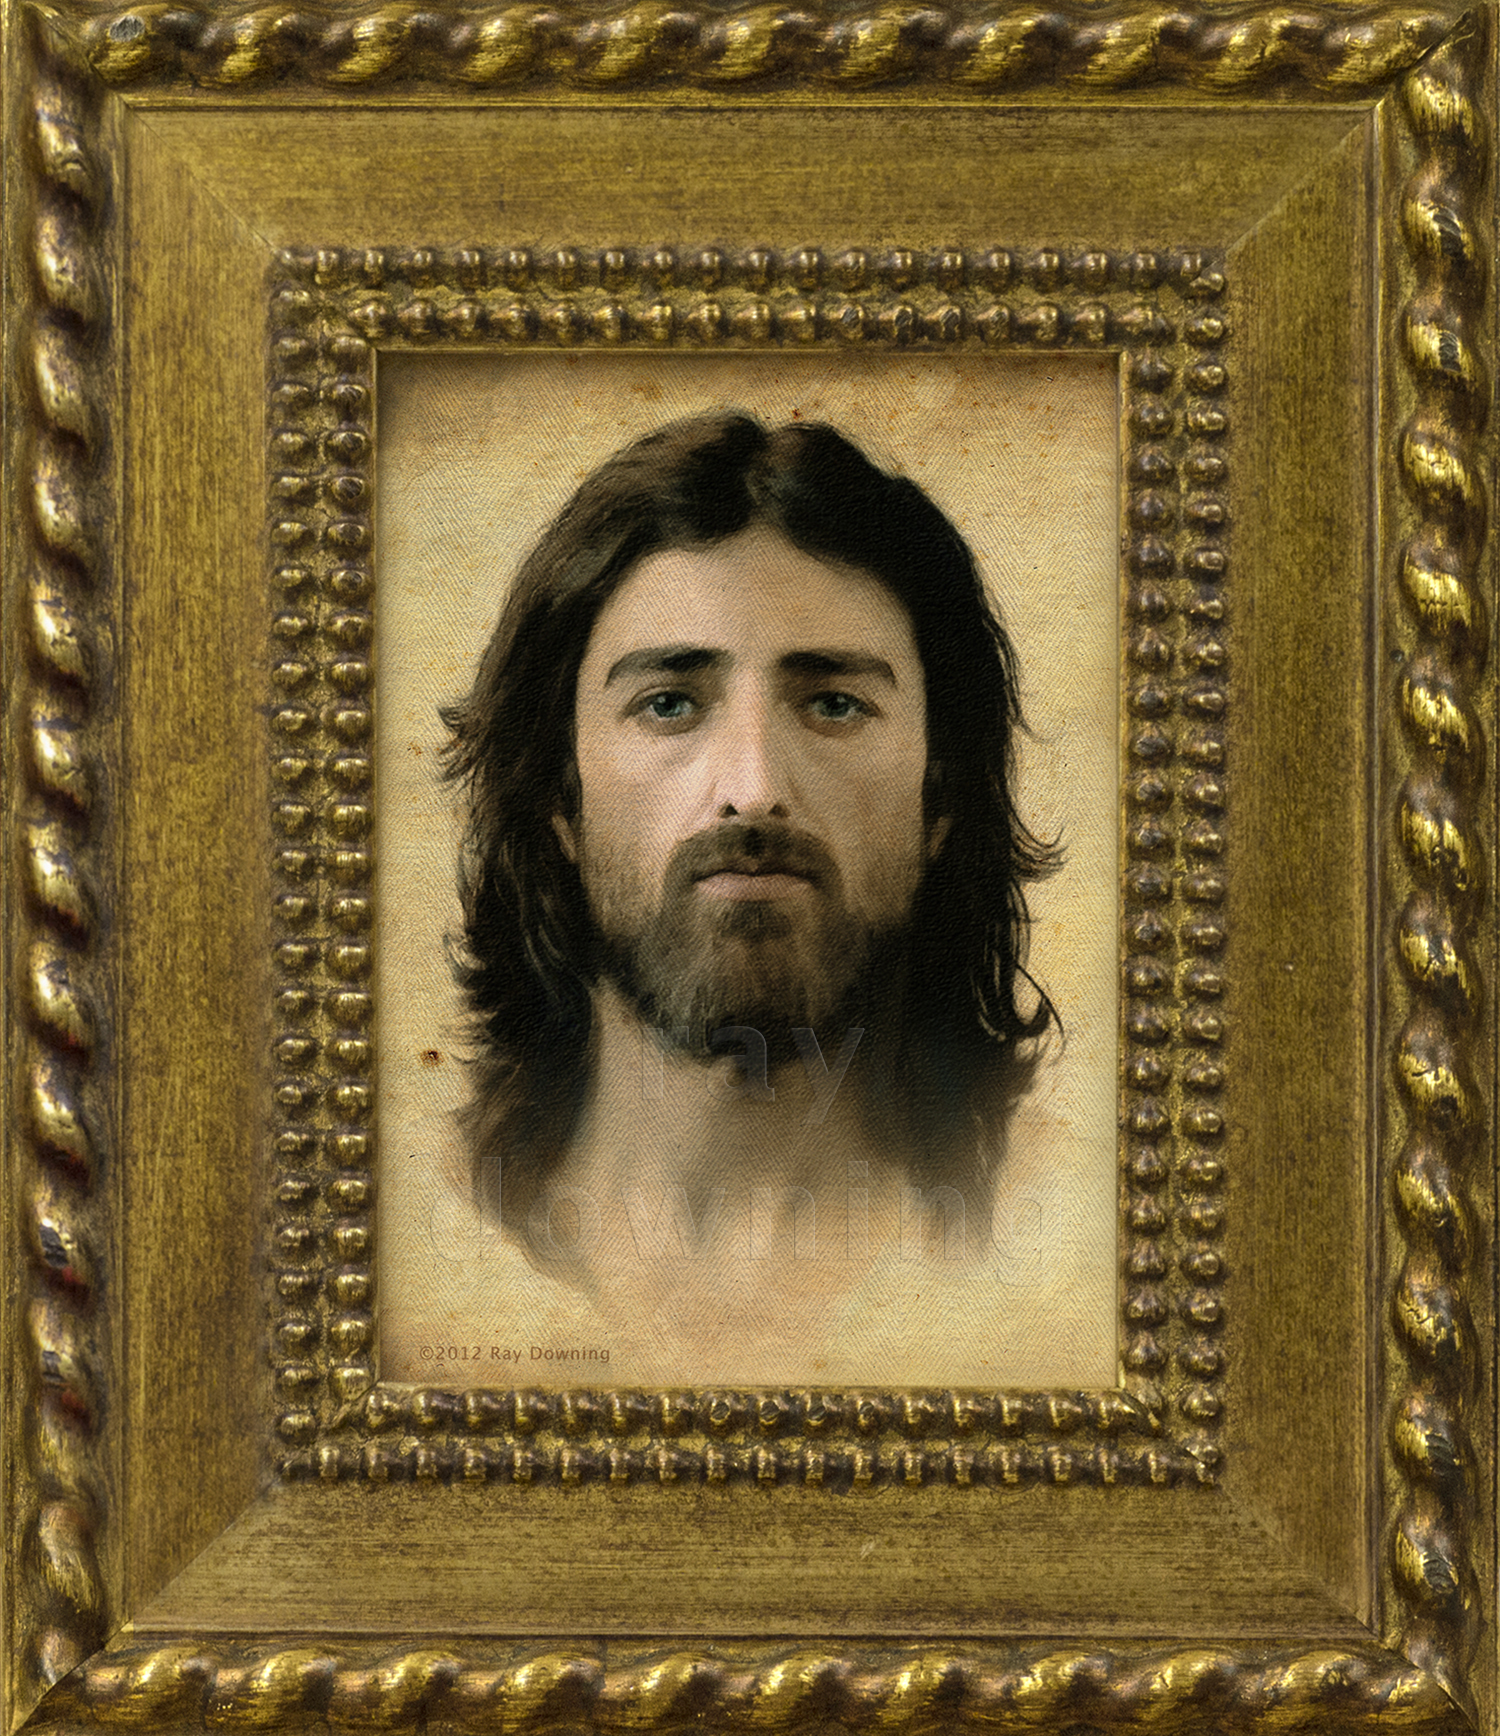 jesus-pictures-shroud-of-turin-i-am-the-way-gold-frame-5x7.jpg